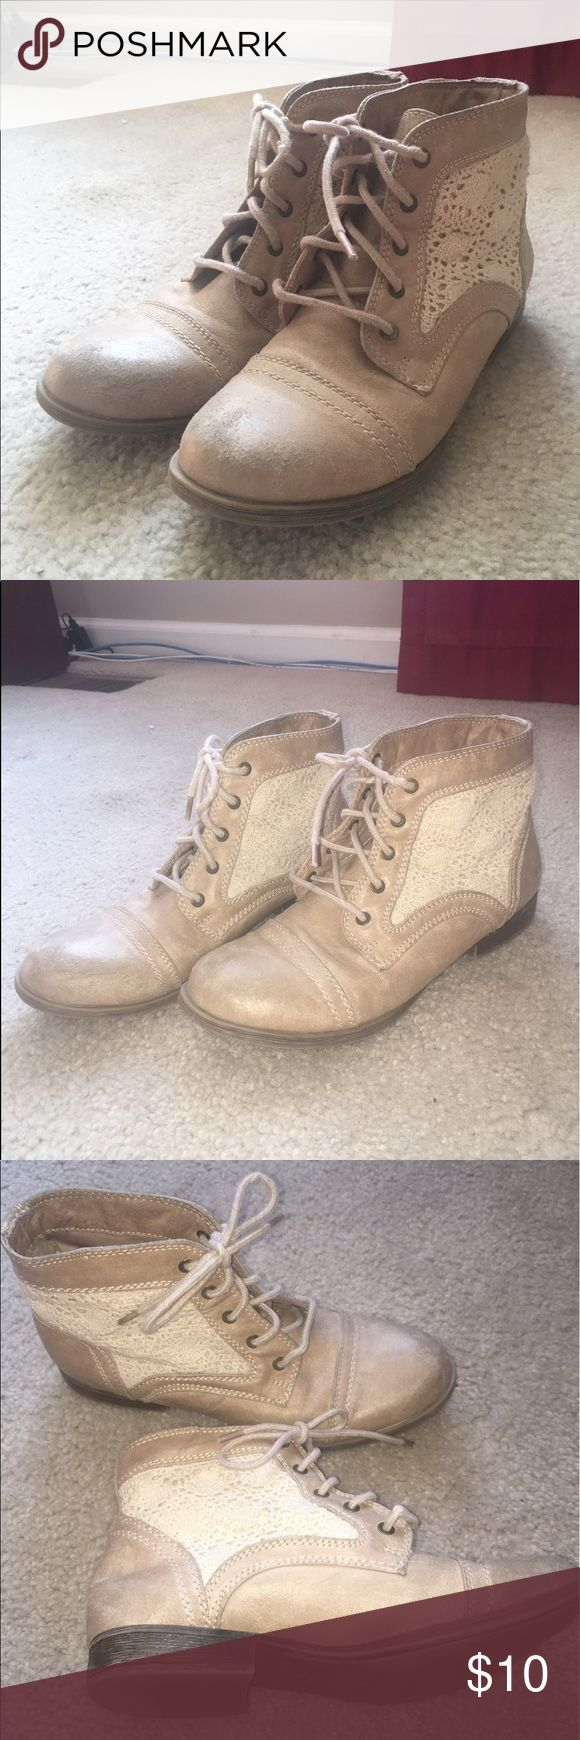 Size 8 tan ankle boots Size 8 tan ankle boots w/ lace detail originally from target (mossimo supply co). Slightly used but still in great shape, just slightly scruffed at toes. Mossimo Supply Co. Shoes Ankle Boots & Booties